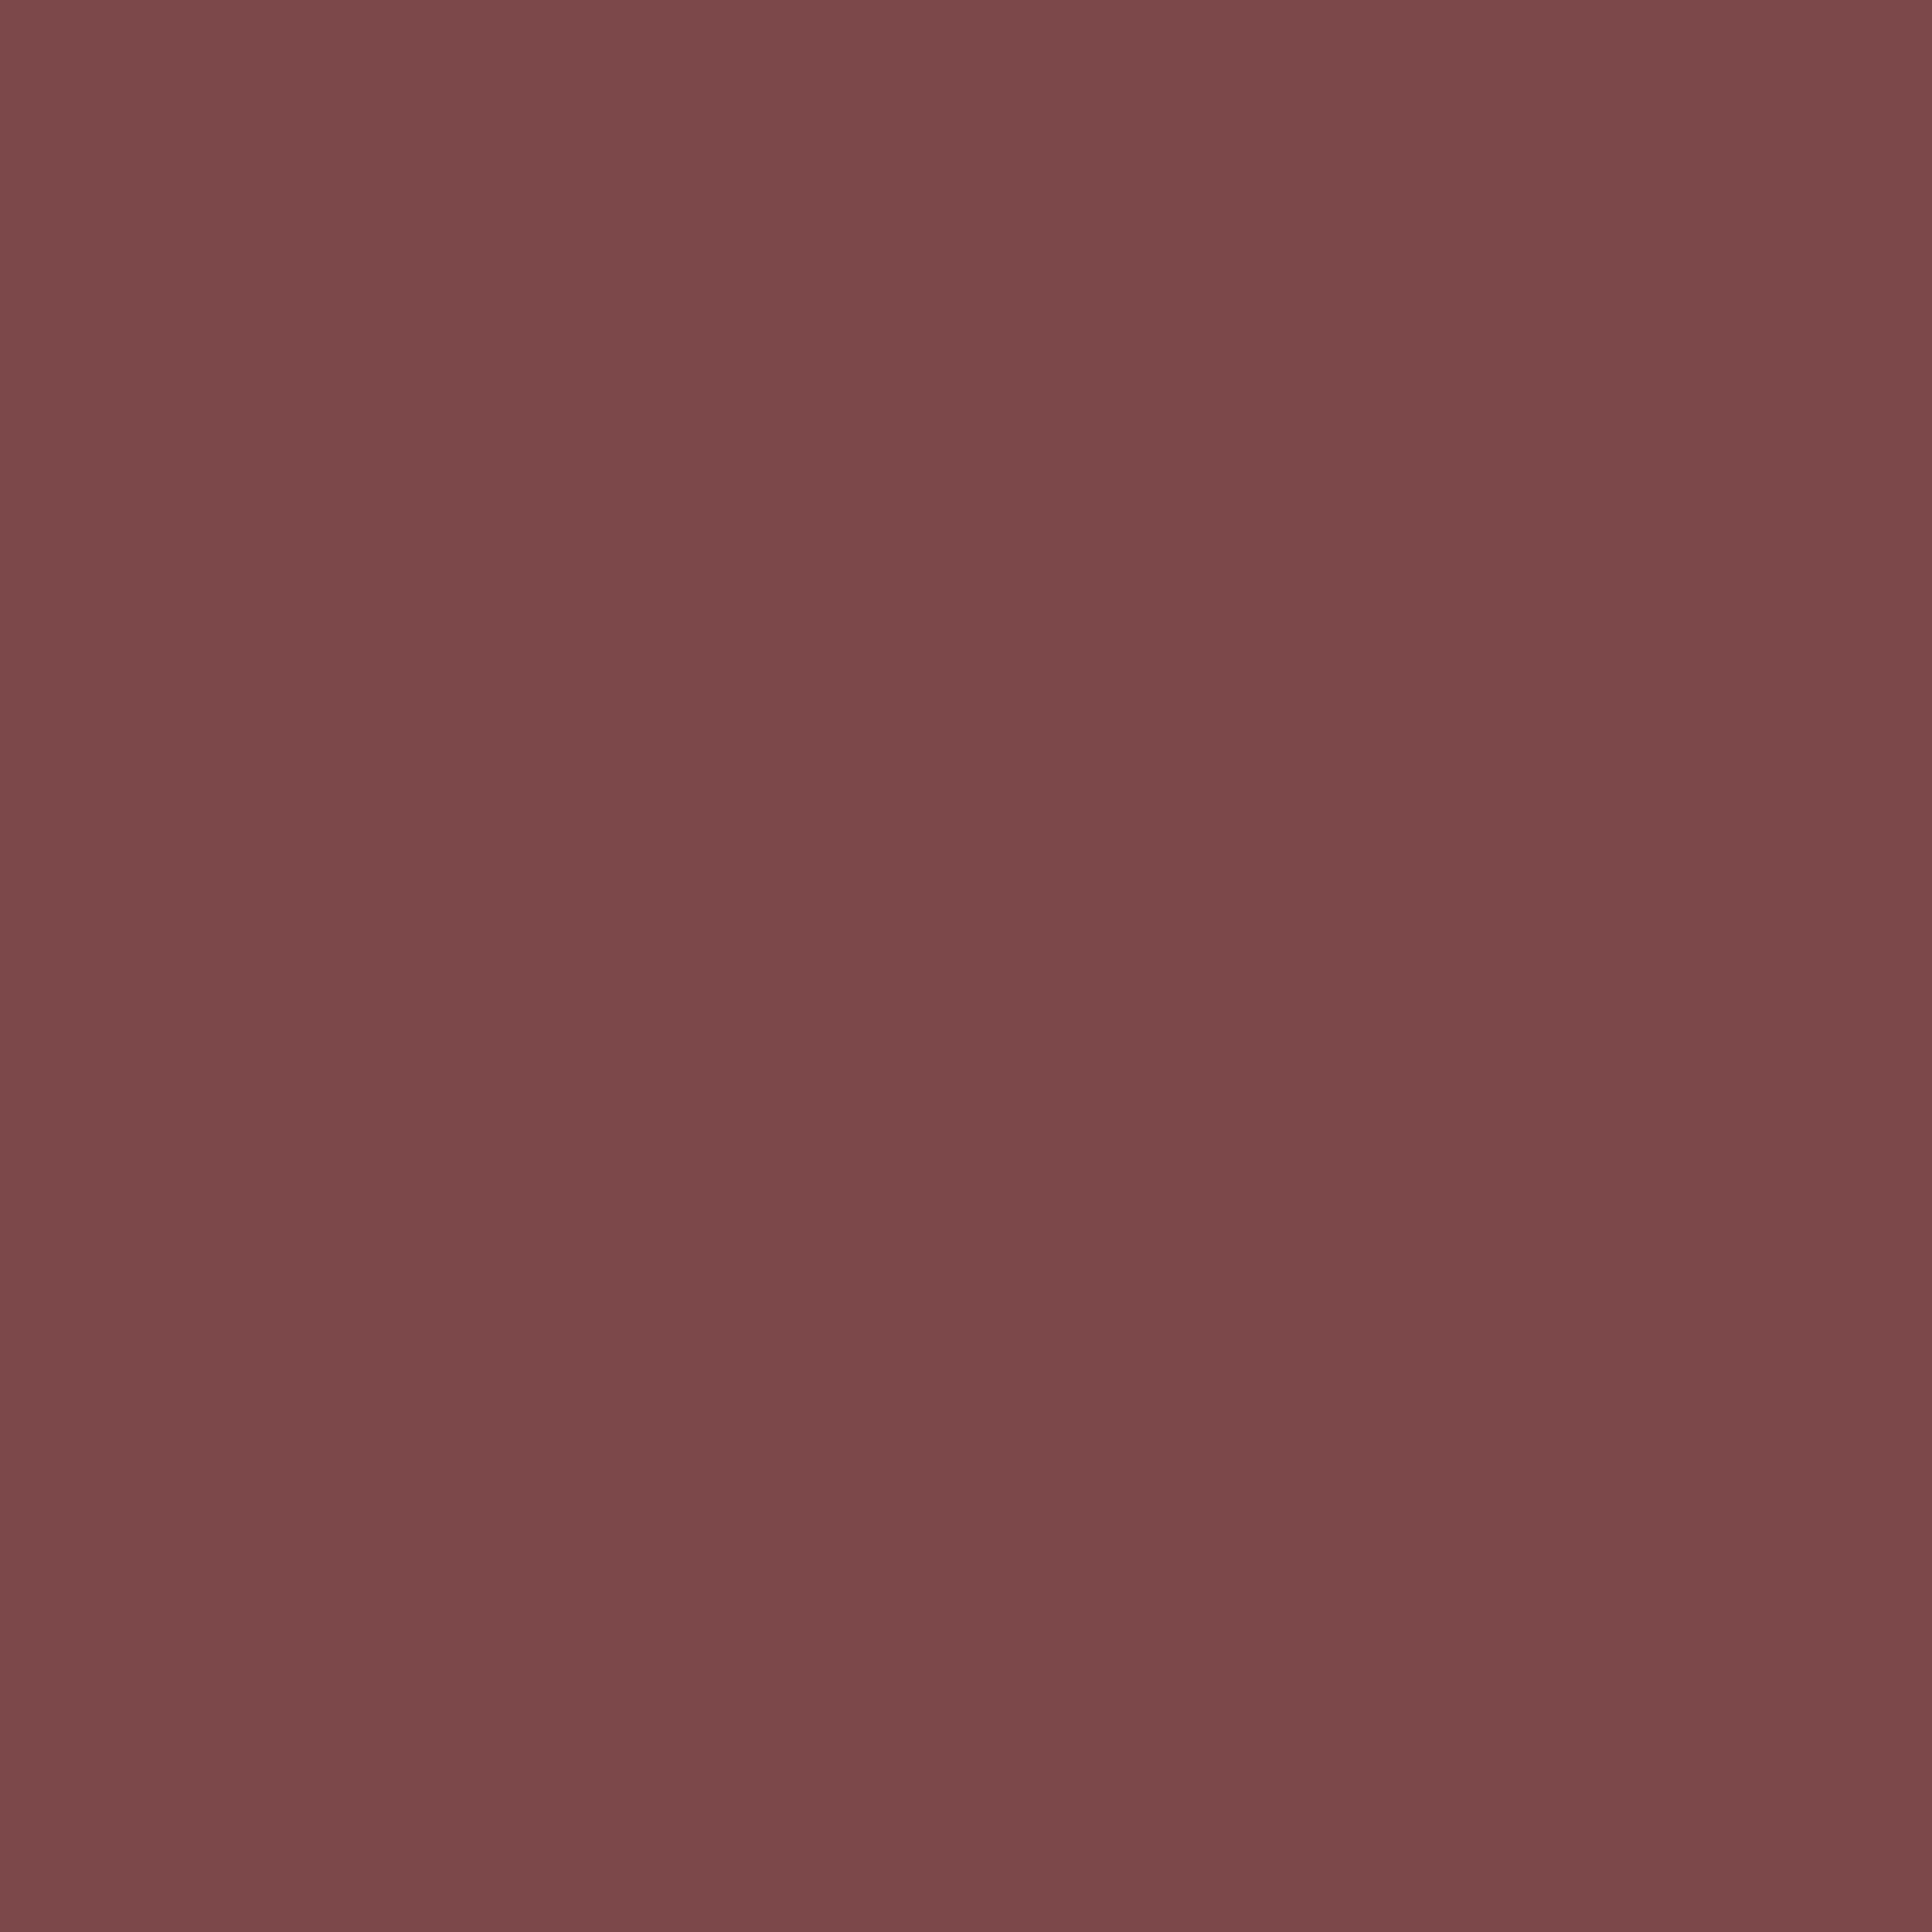 2048x2048 Tuscan Red Solid Color Background